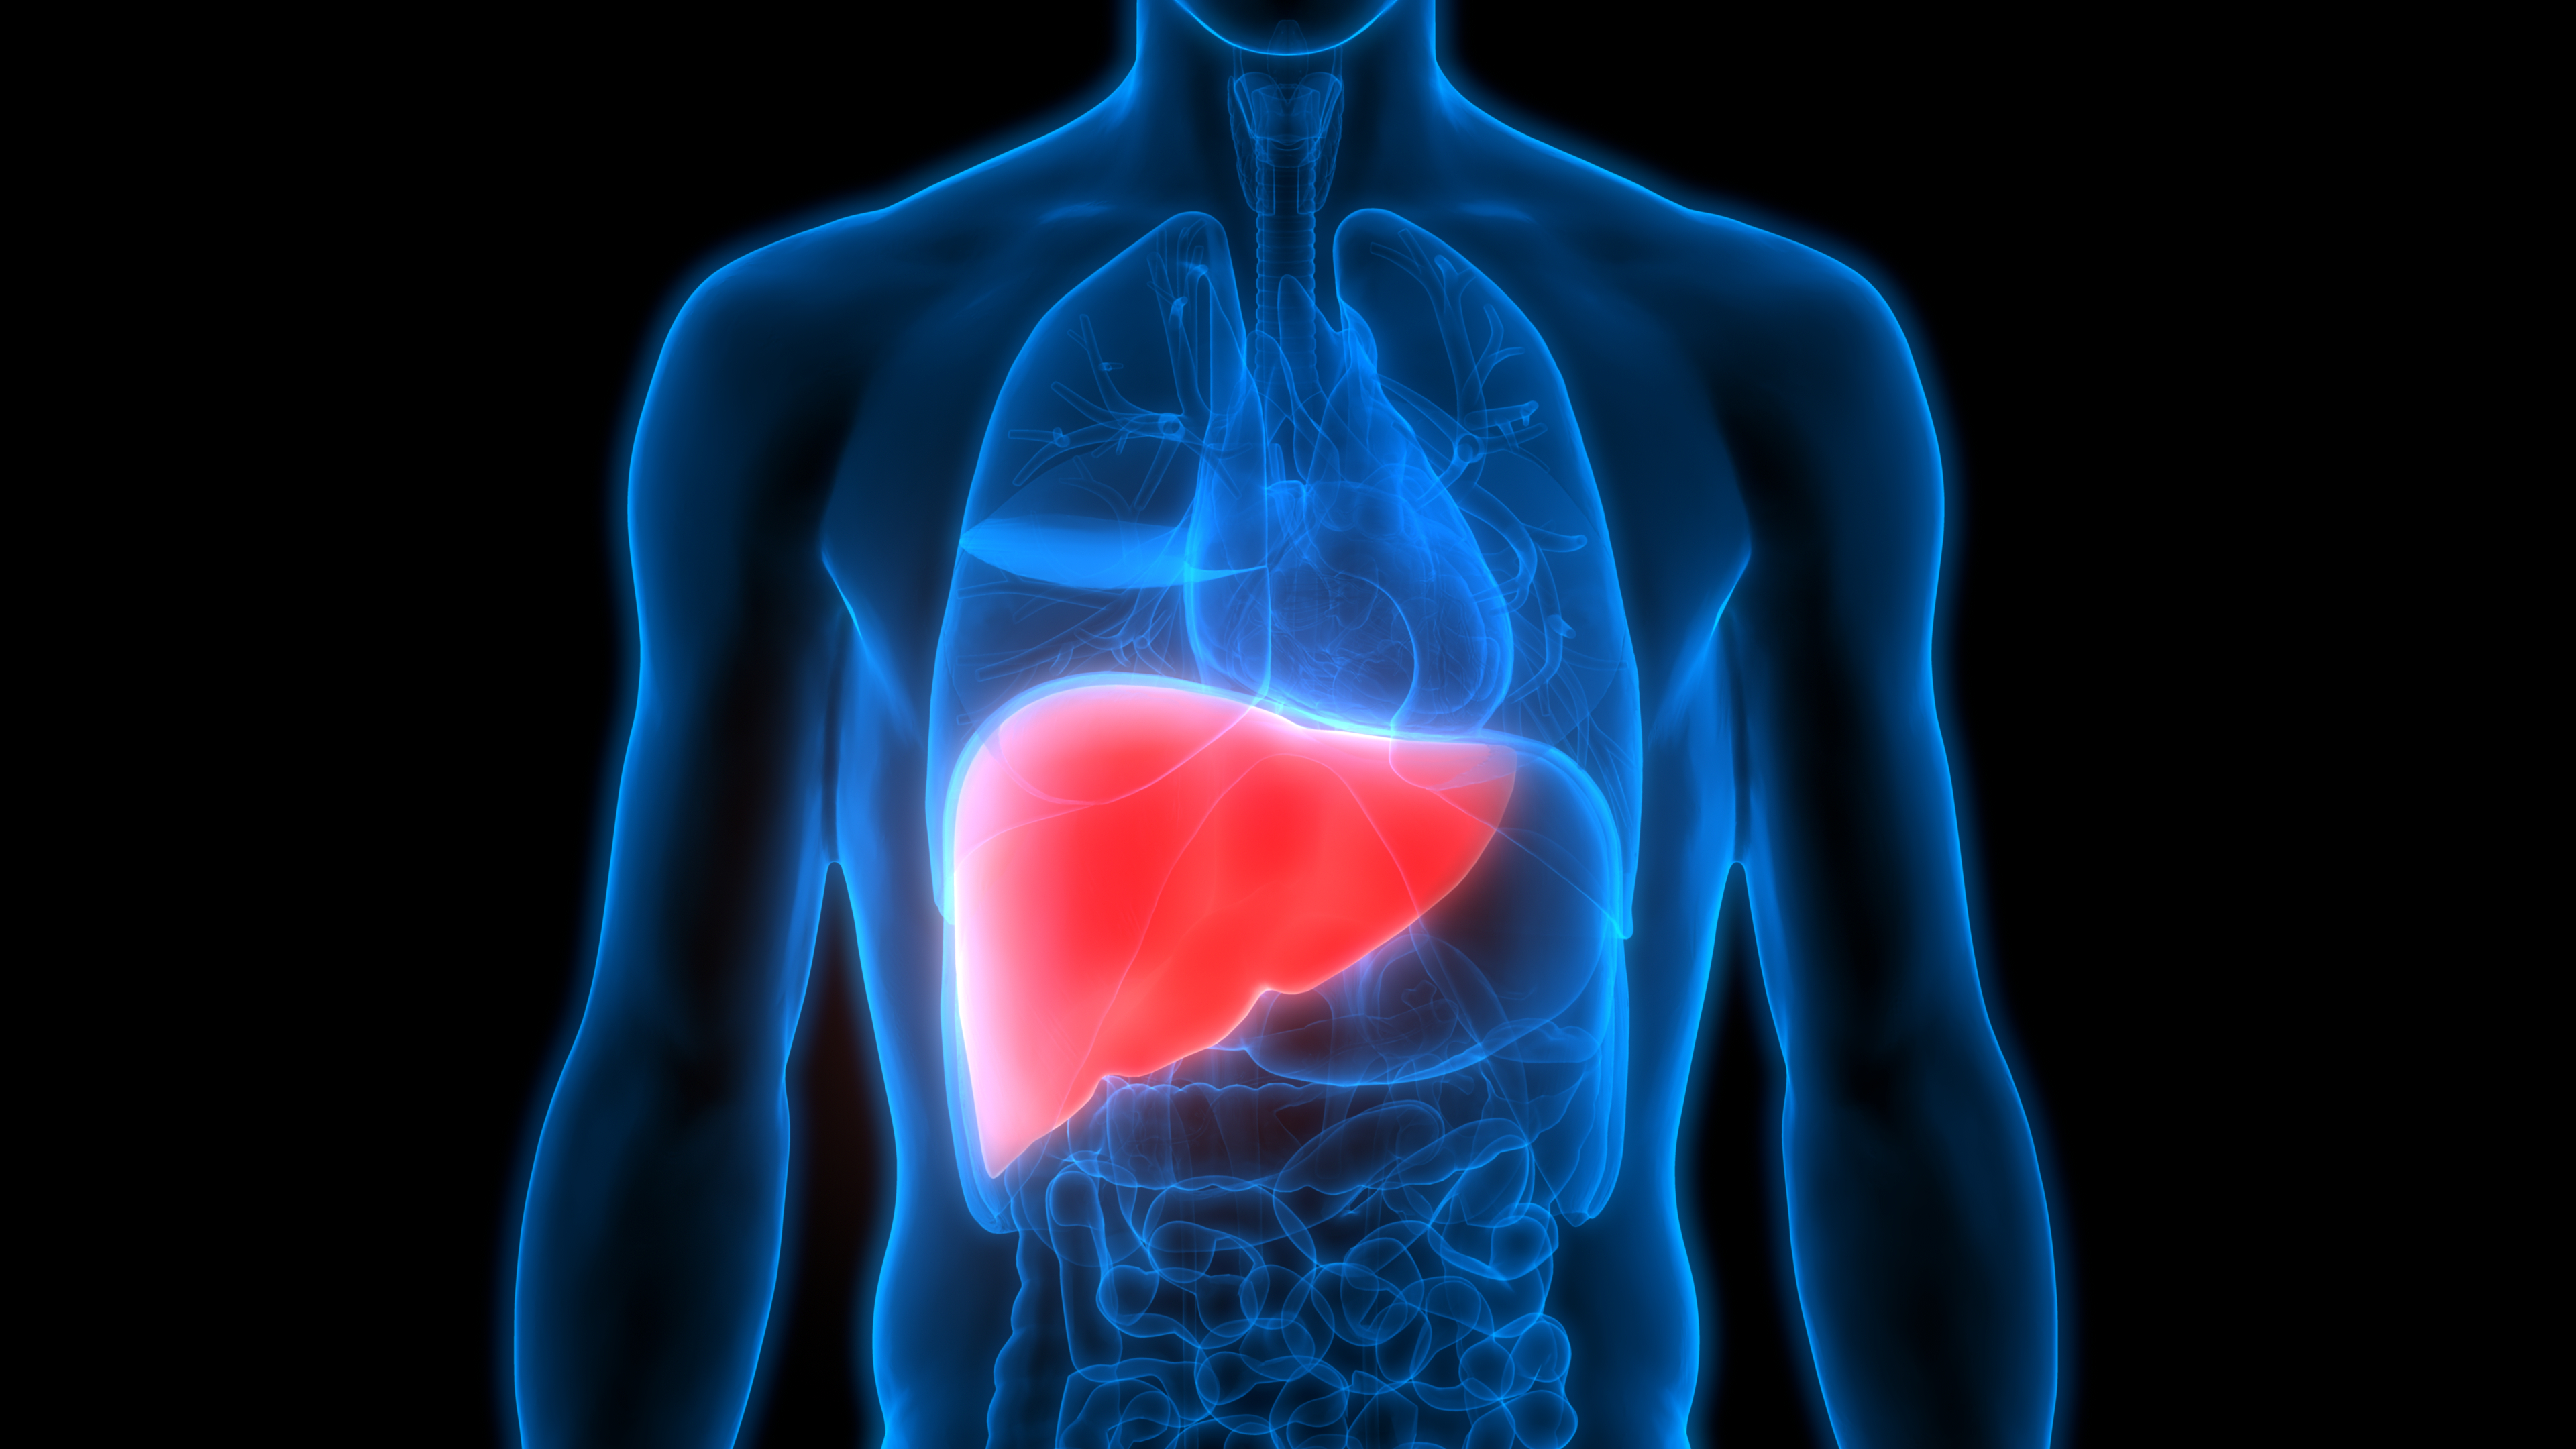 Fatty liver disease: What it is and what to do about it - Harvard